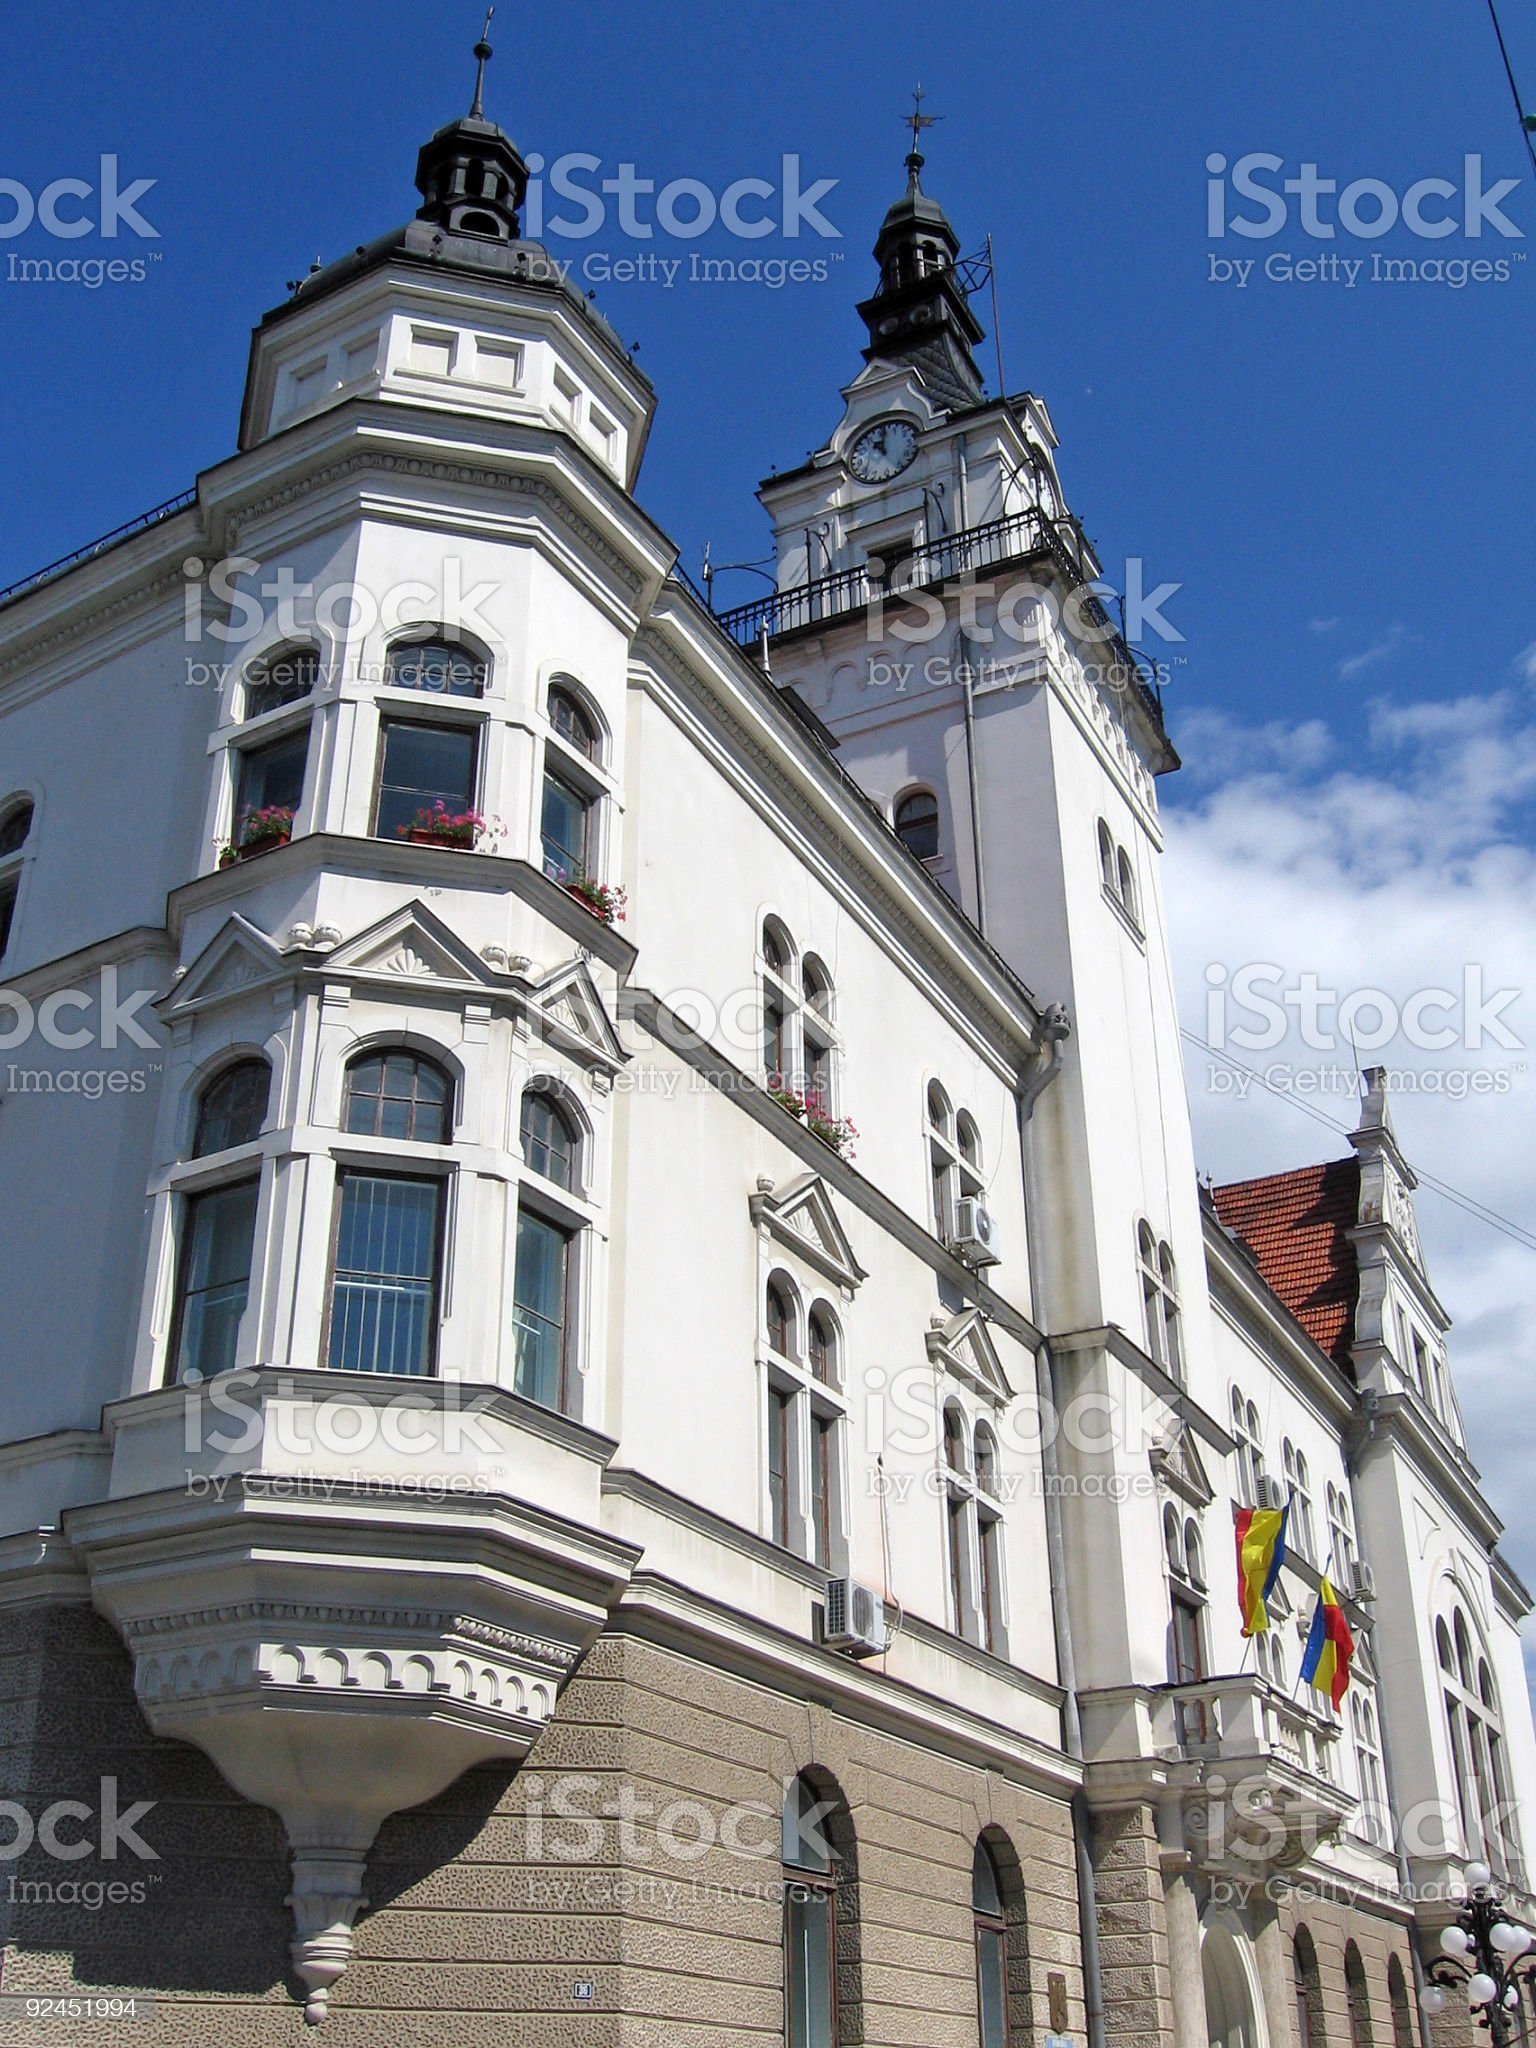 Old town hall royalty-free stock photo